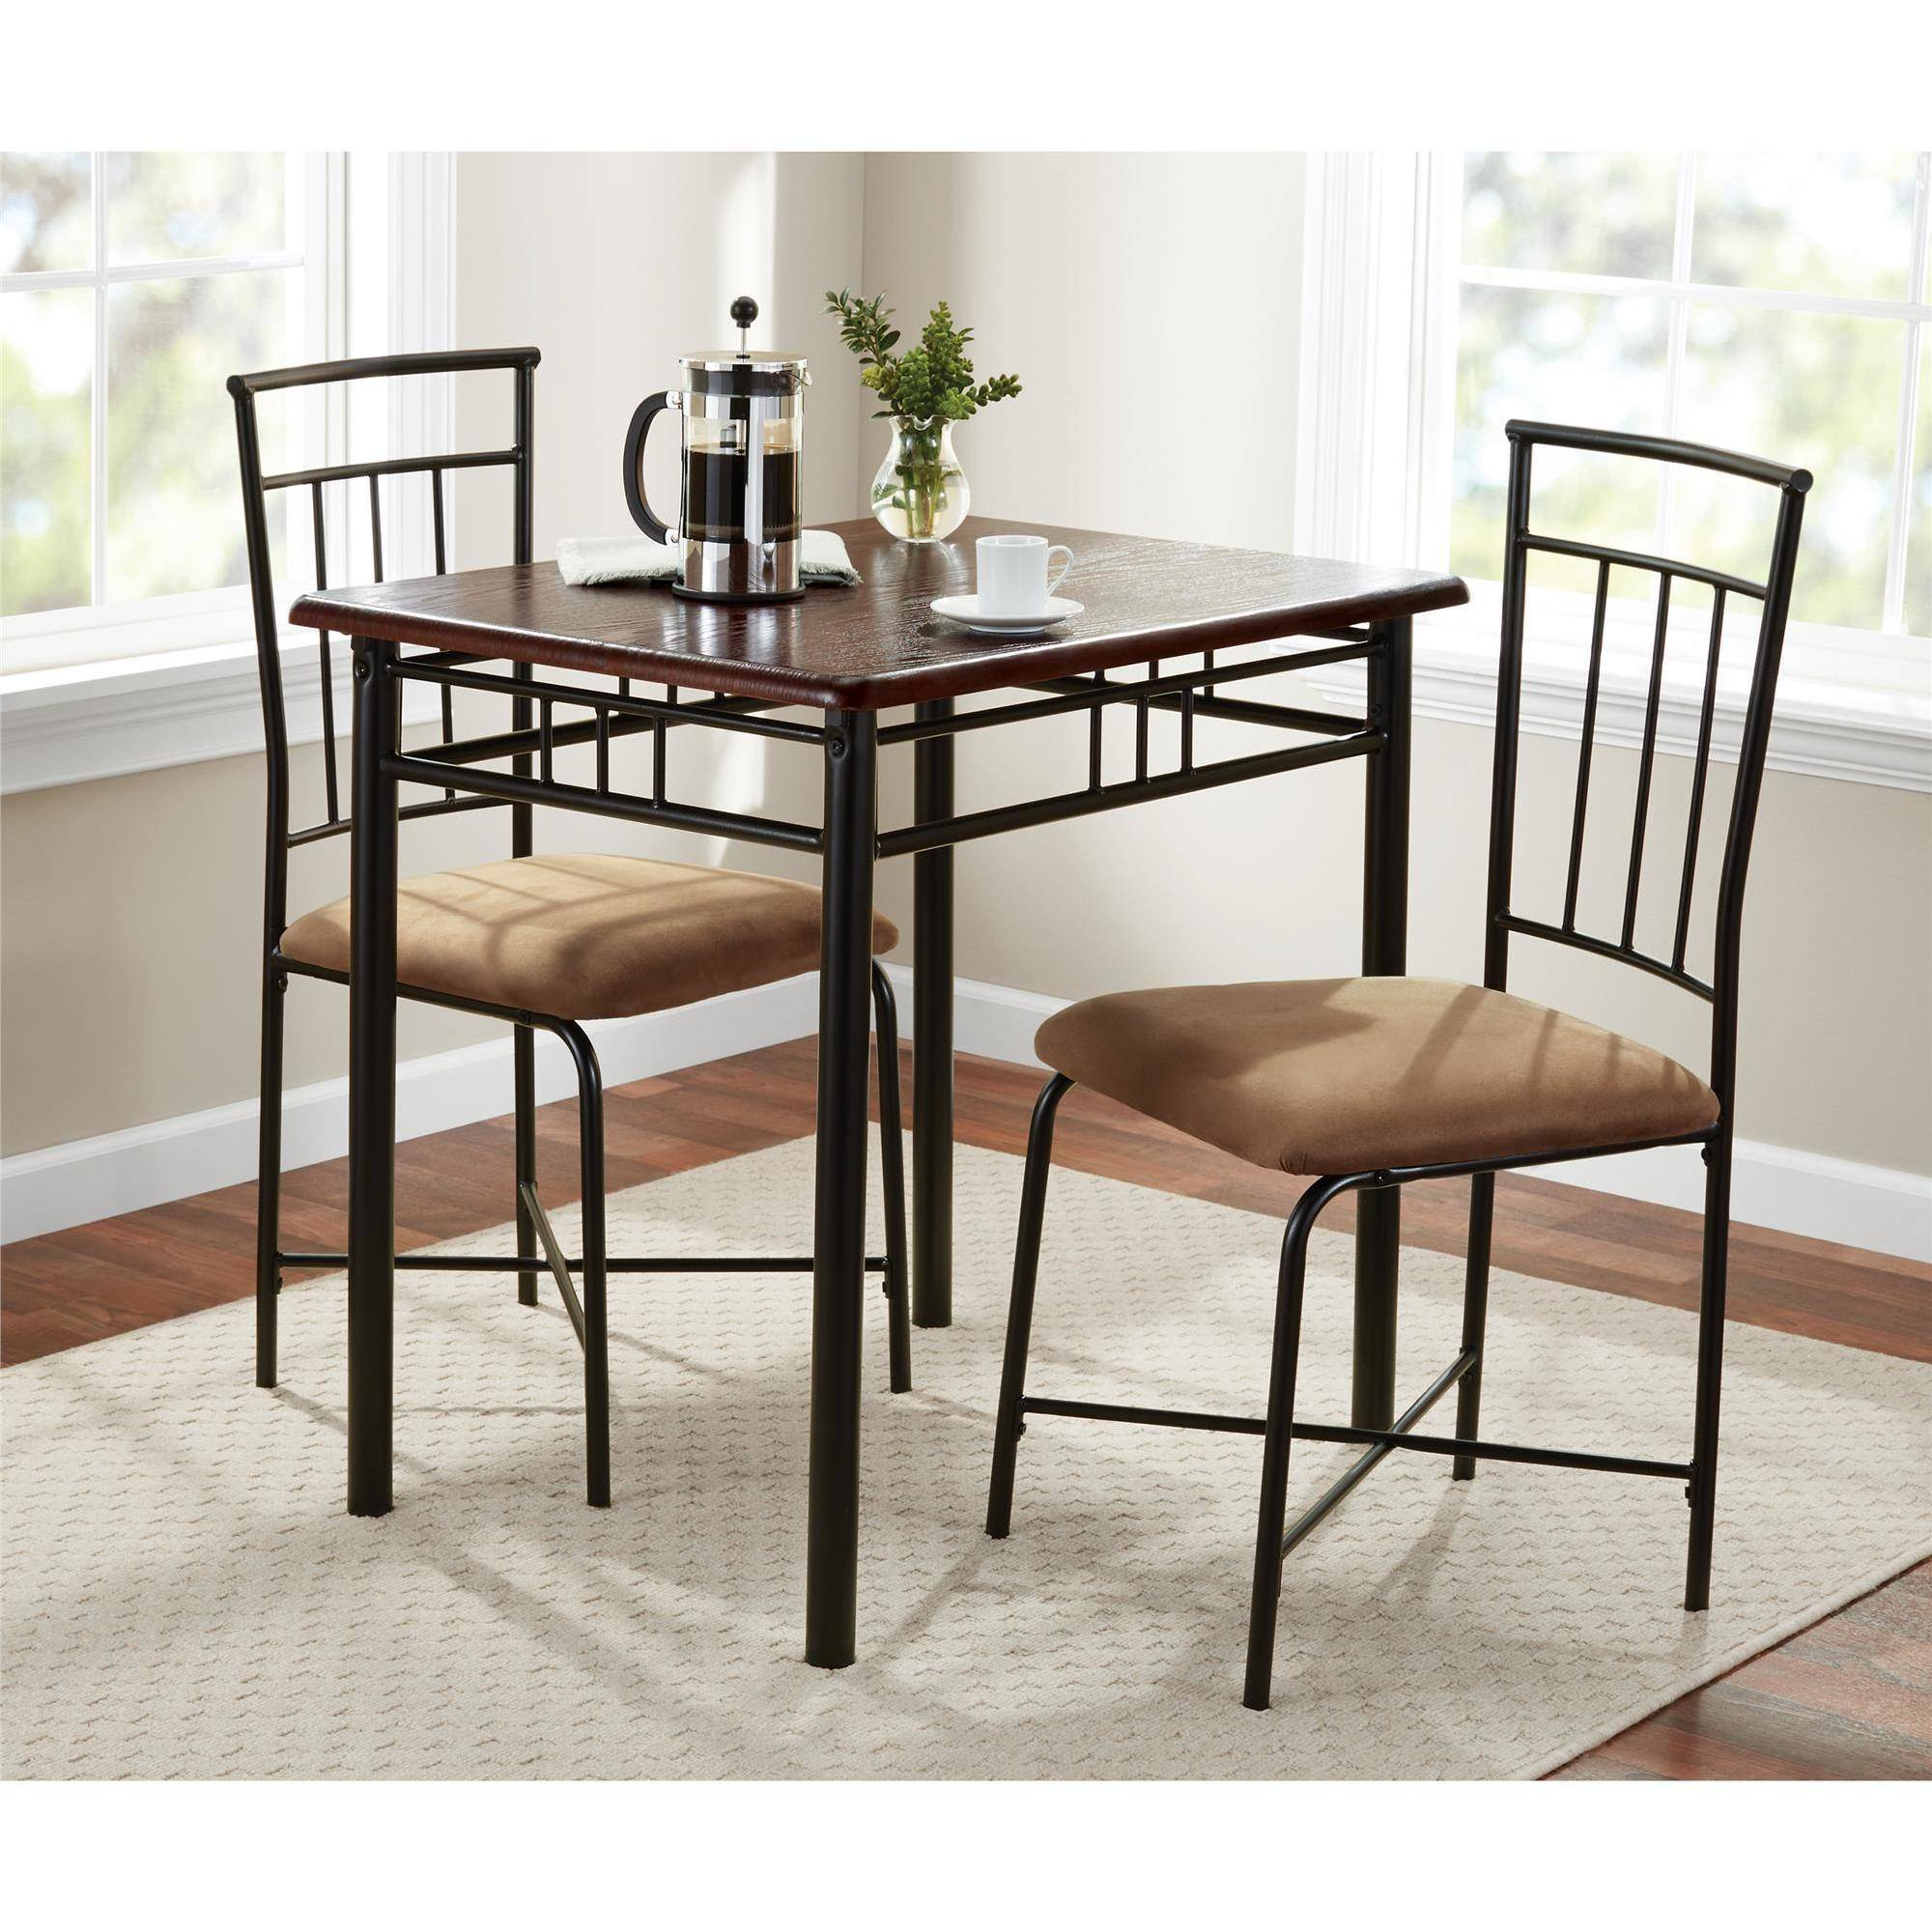 Mainstays 3 Piece Dining Set, Wood And Metal Throughout Most Recently Released Bearden 3 Piece Dining Sets (Photo 14 of 20)